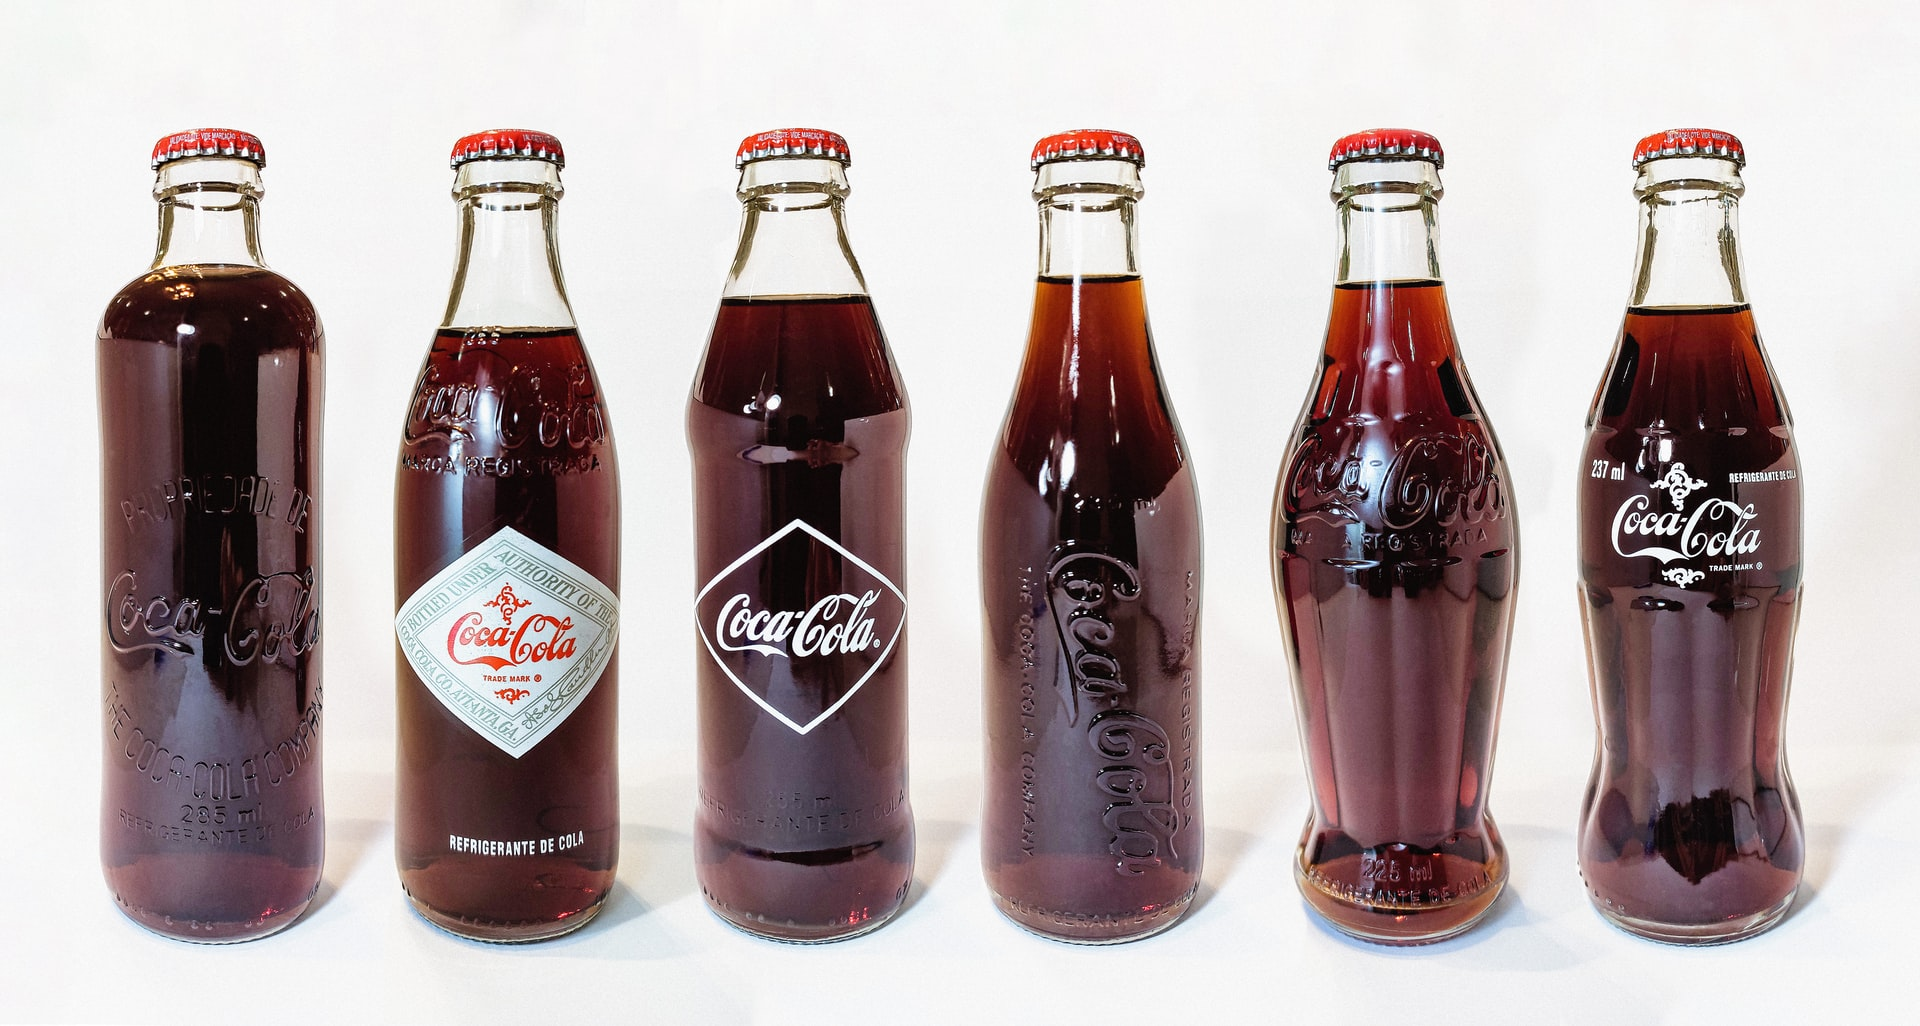 The evolution of the Coca Cola bottles